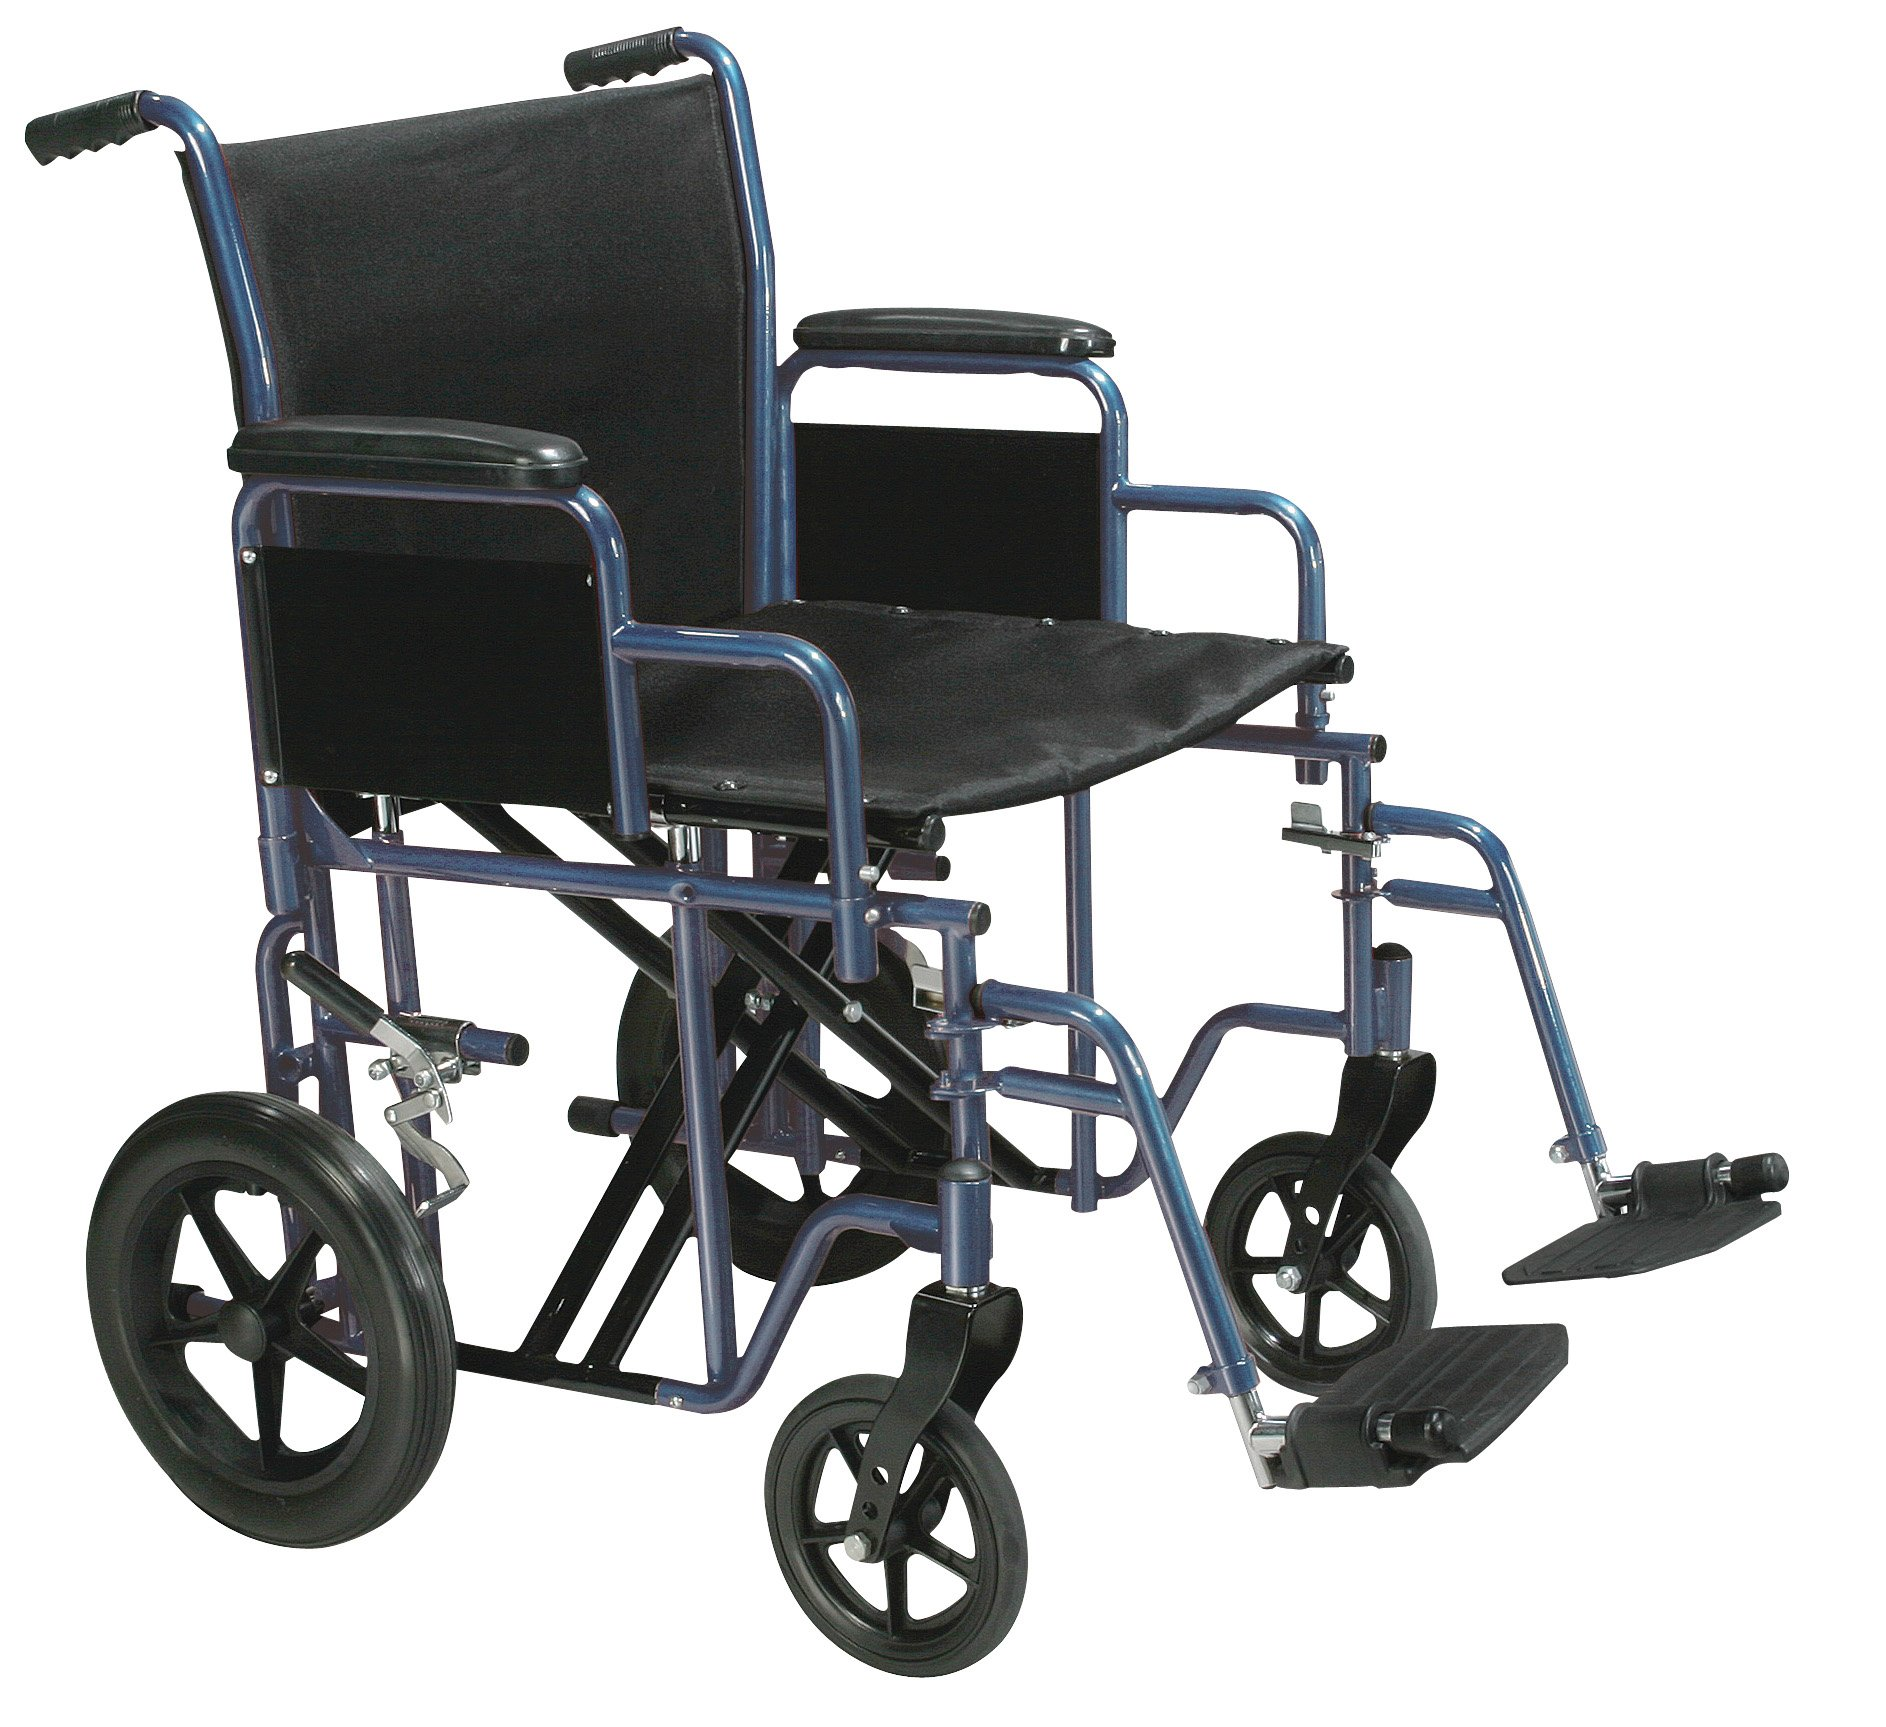 Drive Medical Bariatric Heavy Duty Transport Wheelchair with Swing-Away Footrest, Blue, 22 Inch by Drive Medical